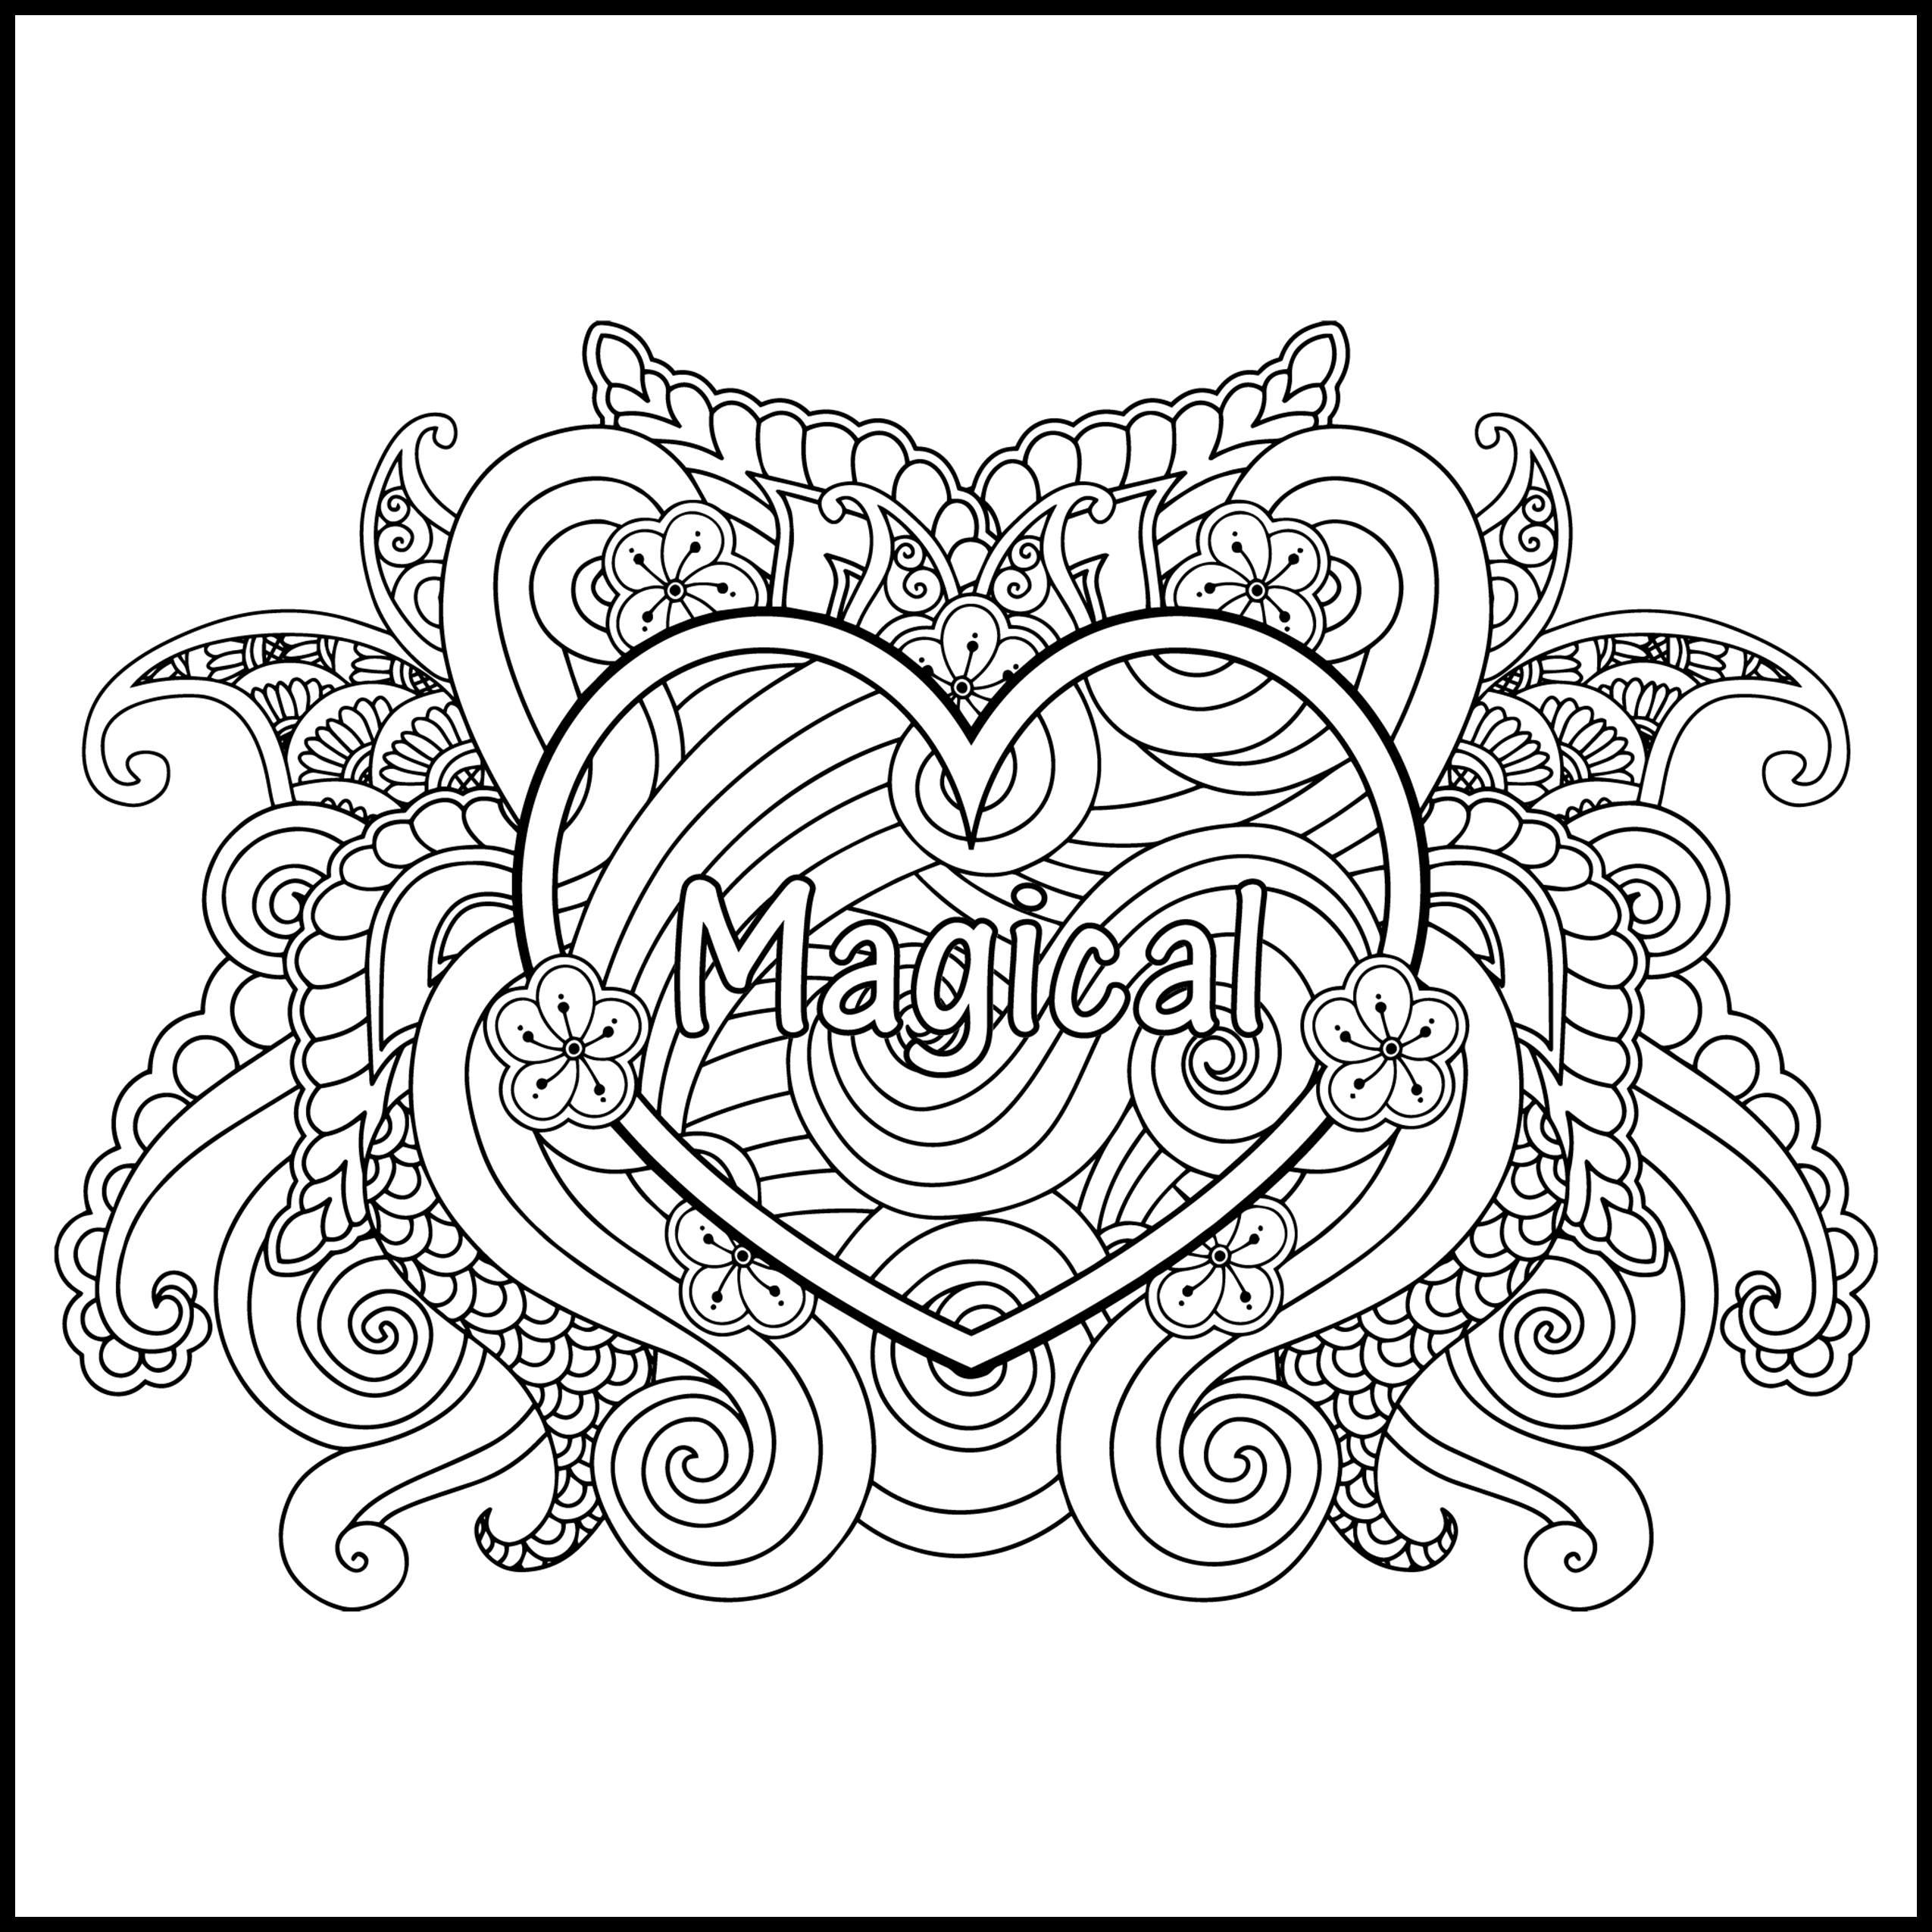 I AM Magical Adult Coloring Page Inspiring Coloring Page